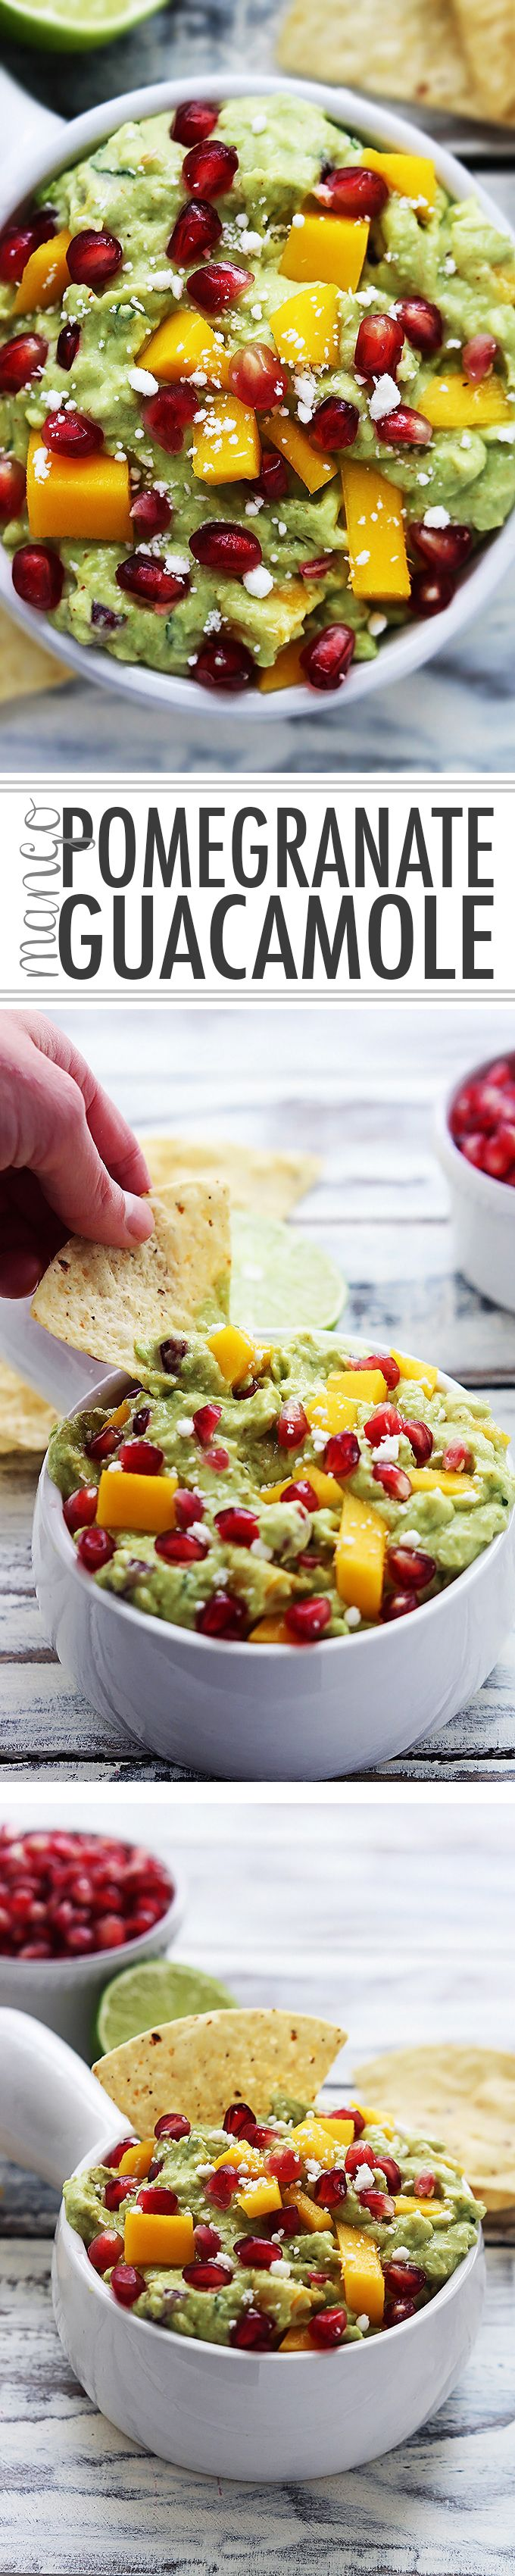 Zesty guacamole with juicy pomegranate jewels, fresh mango, feta cheese, and a hint of garlic and lime.